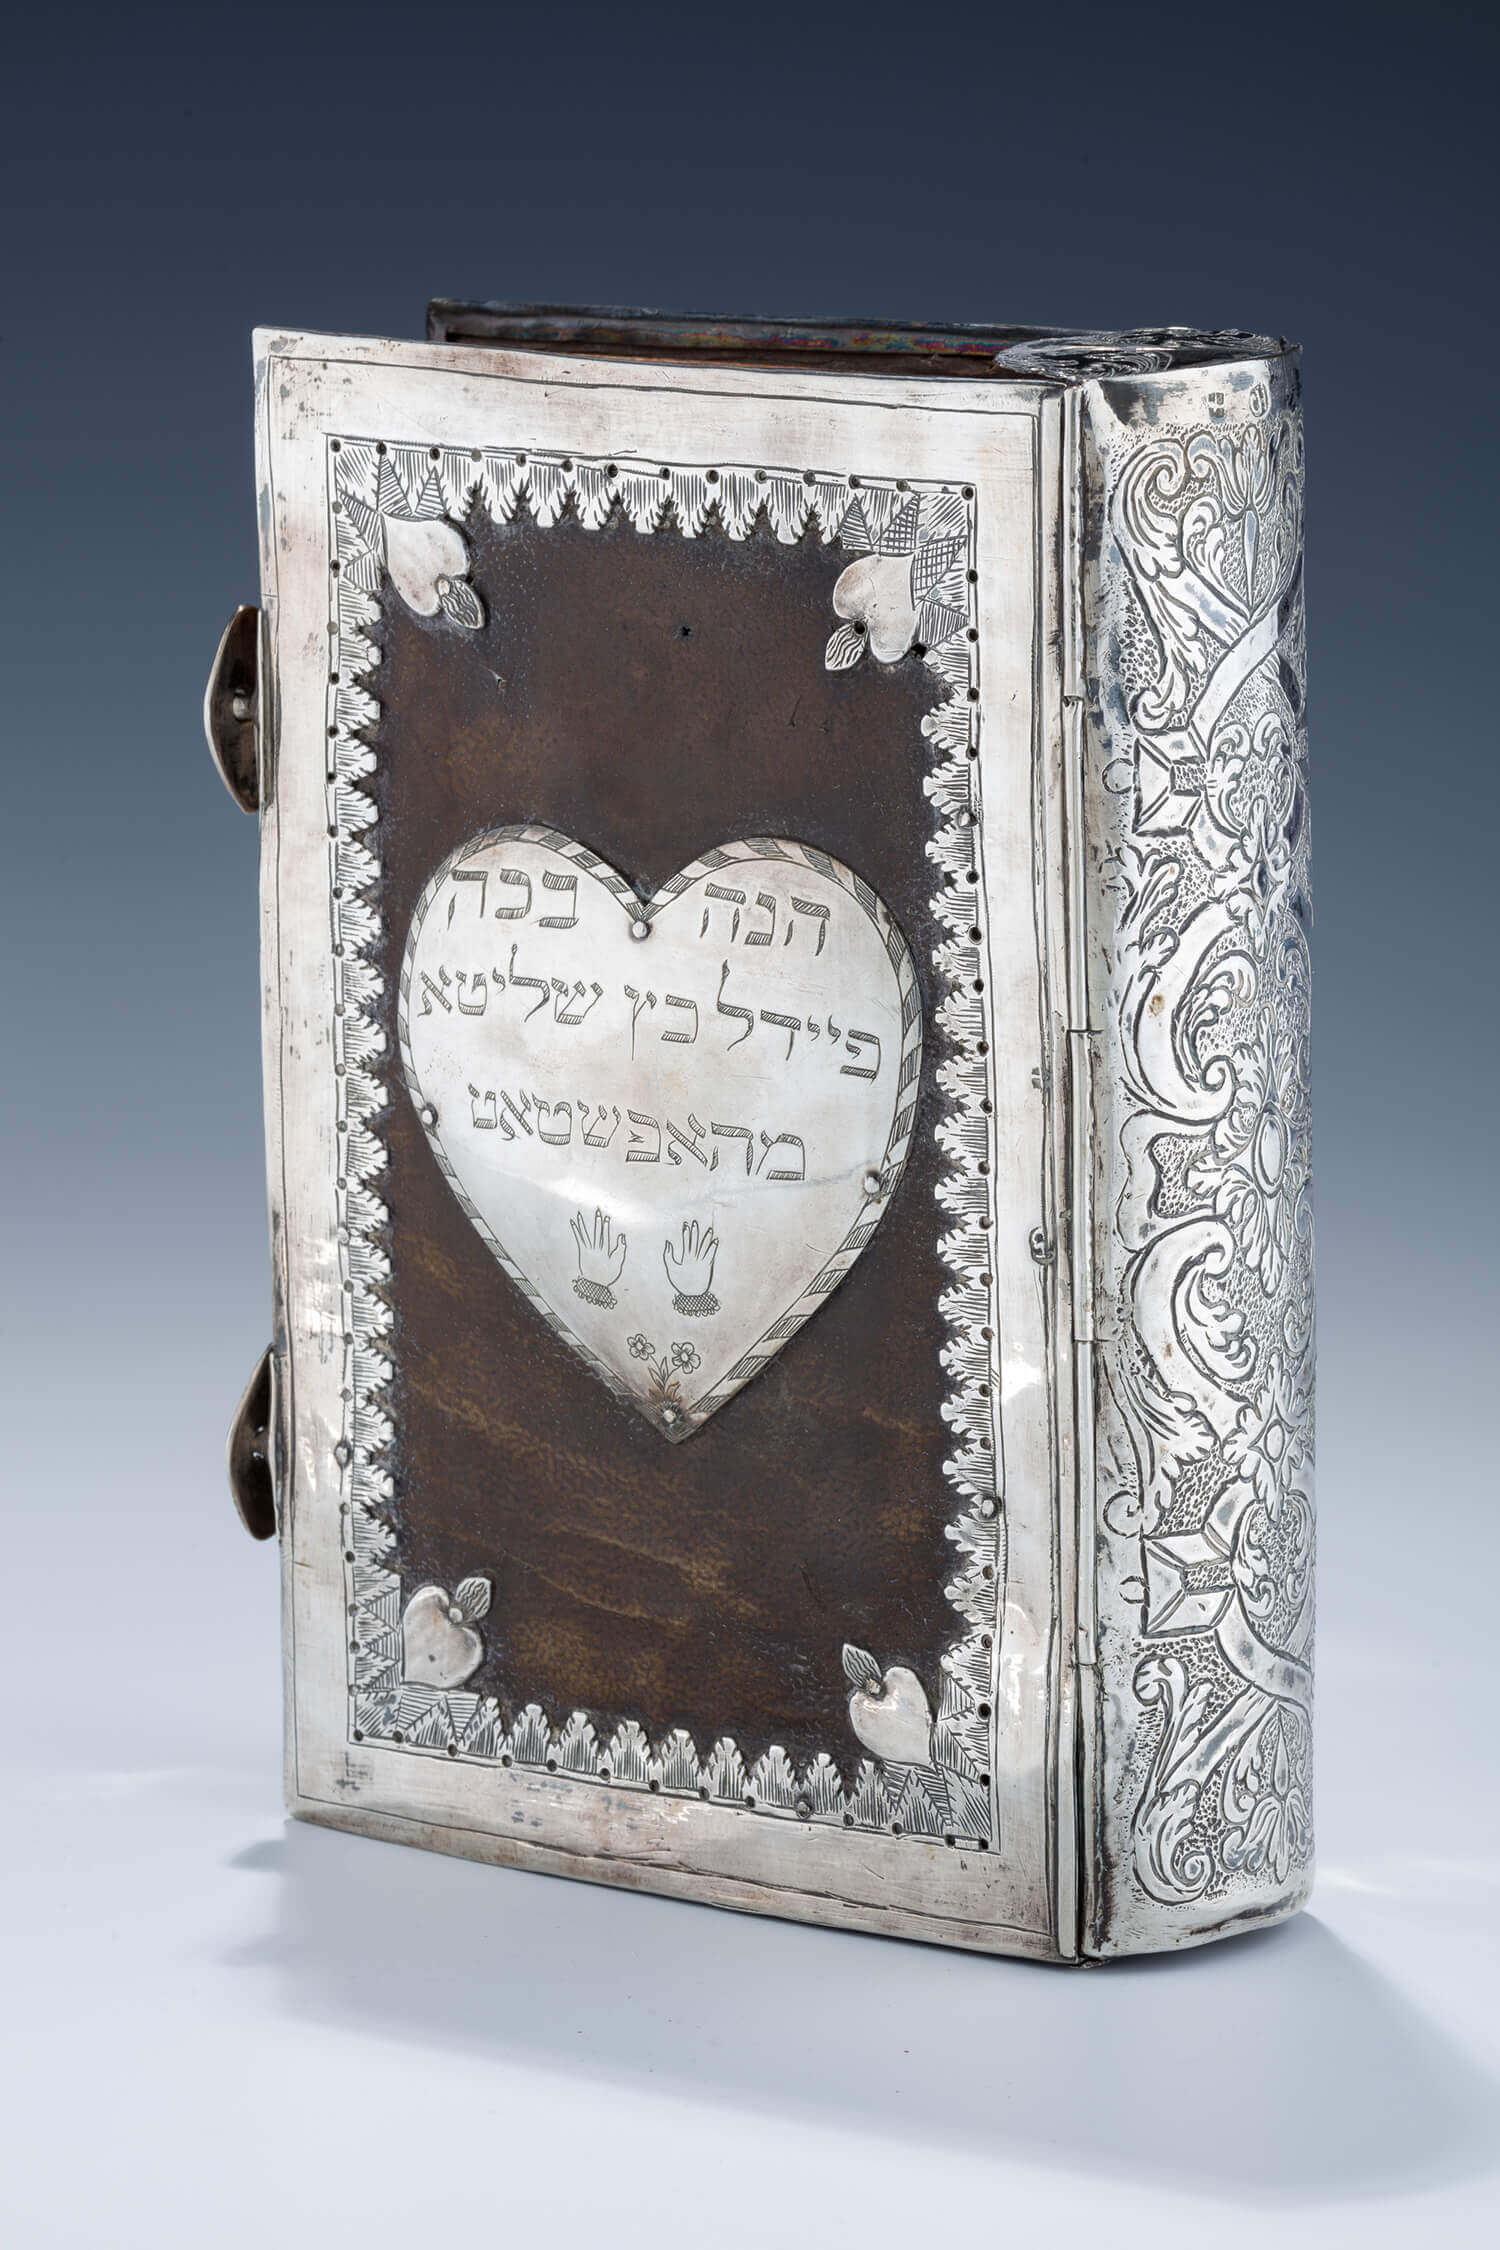 087. SEDER HATEFILLOT MIKOL HASHANAH (PRAYER BOOK FOR THE ENTIRE YEAR)